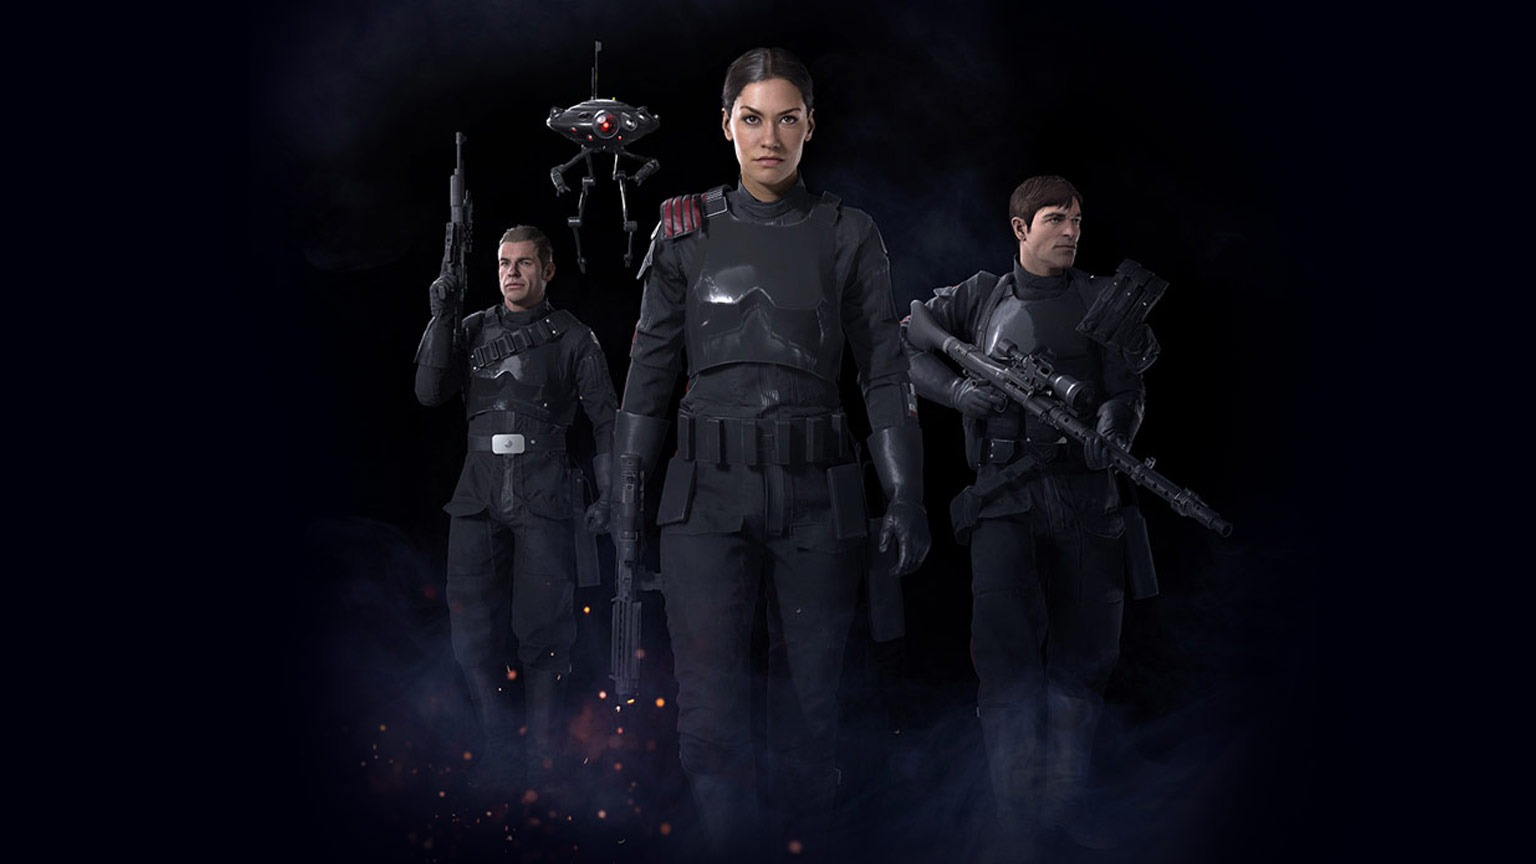 inferno squad battlefront II star wars